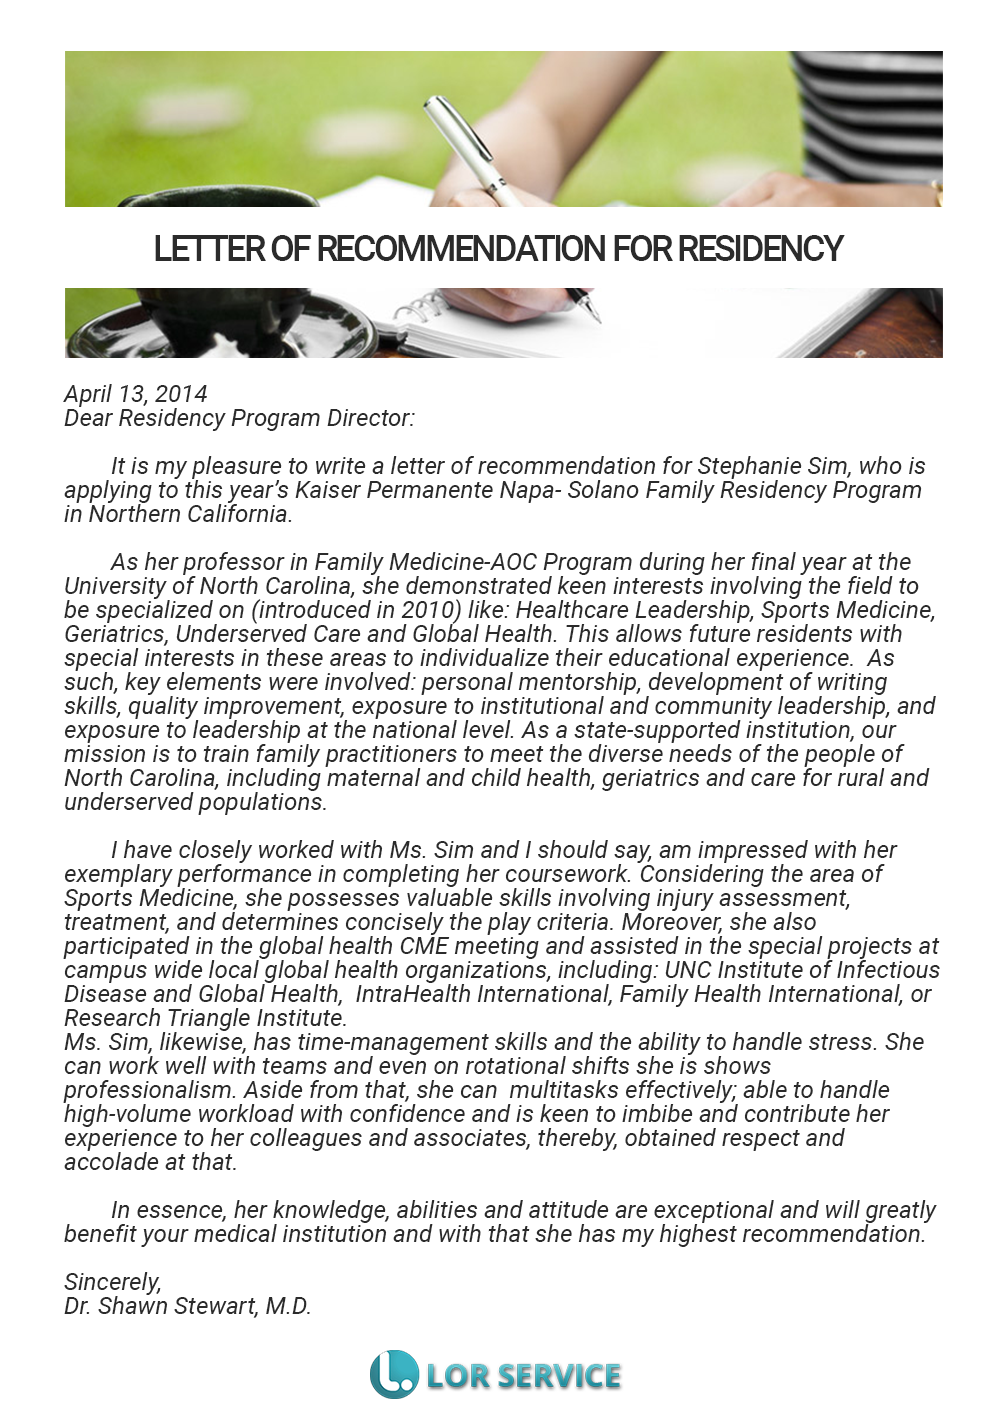 writing a letter of recommendation for residency may sound easy at first until you get to it most find themselves at a loss for words because they are not